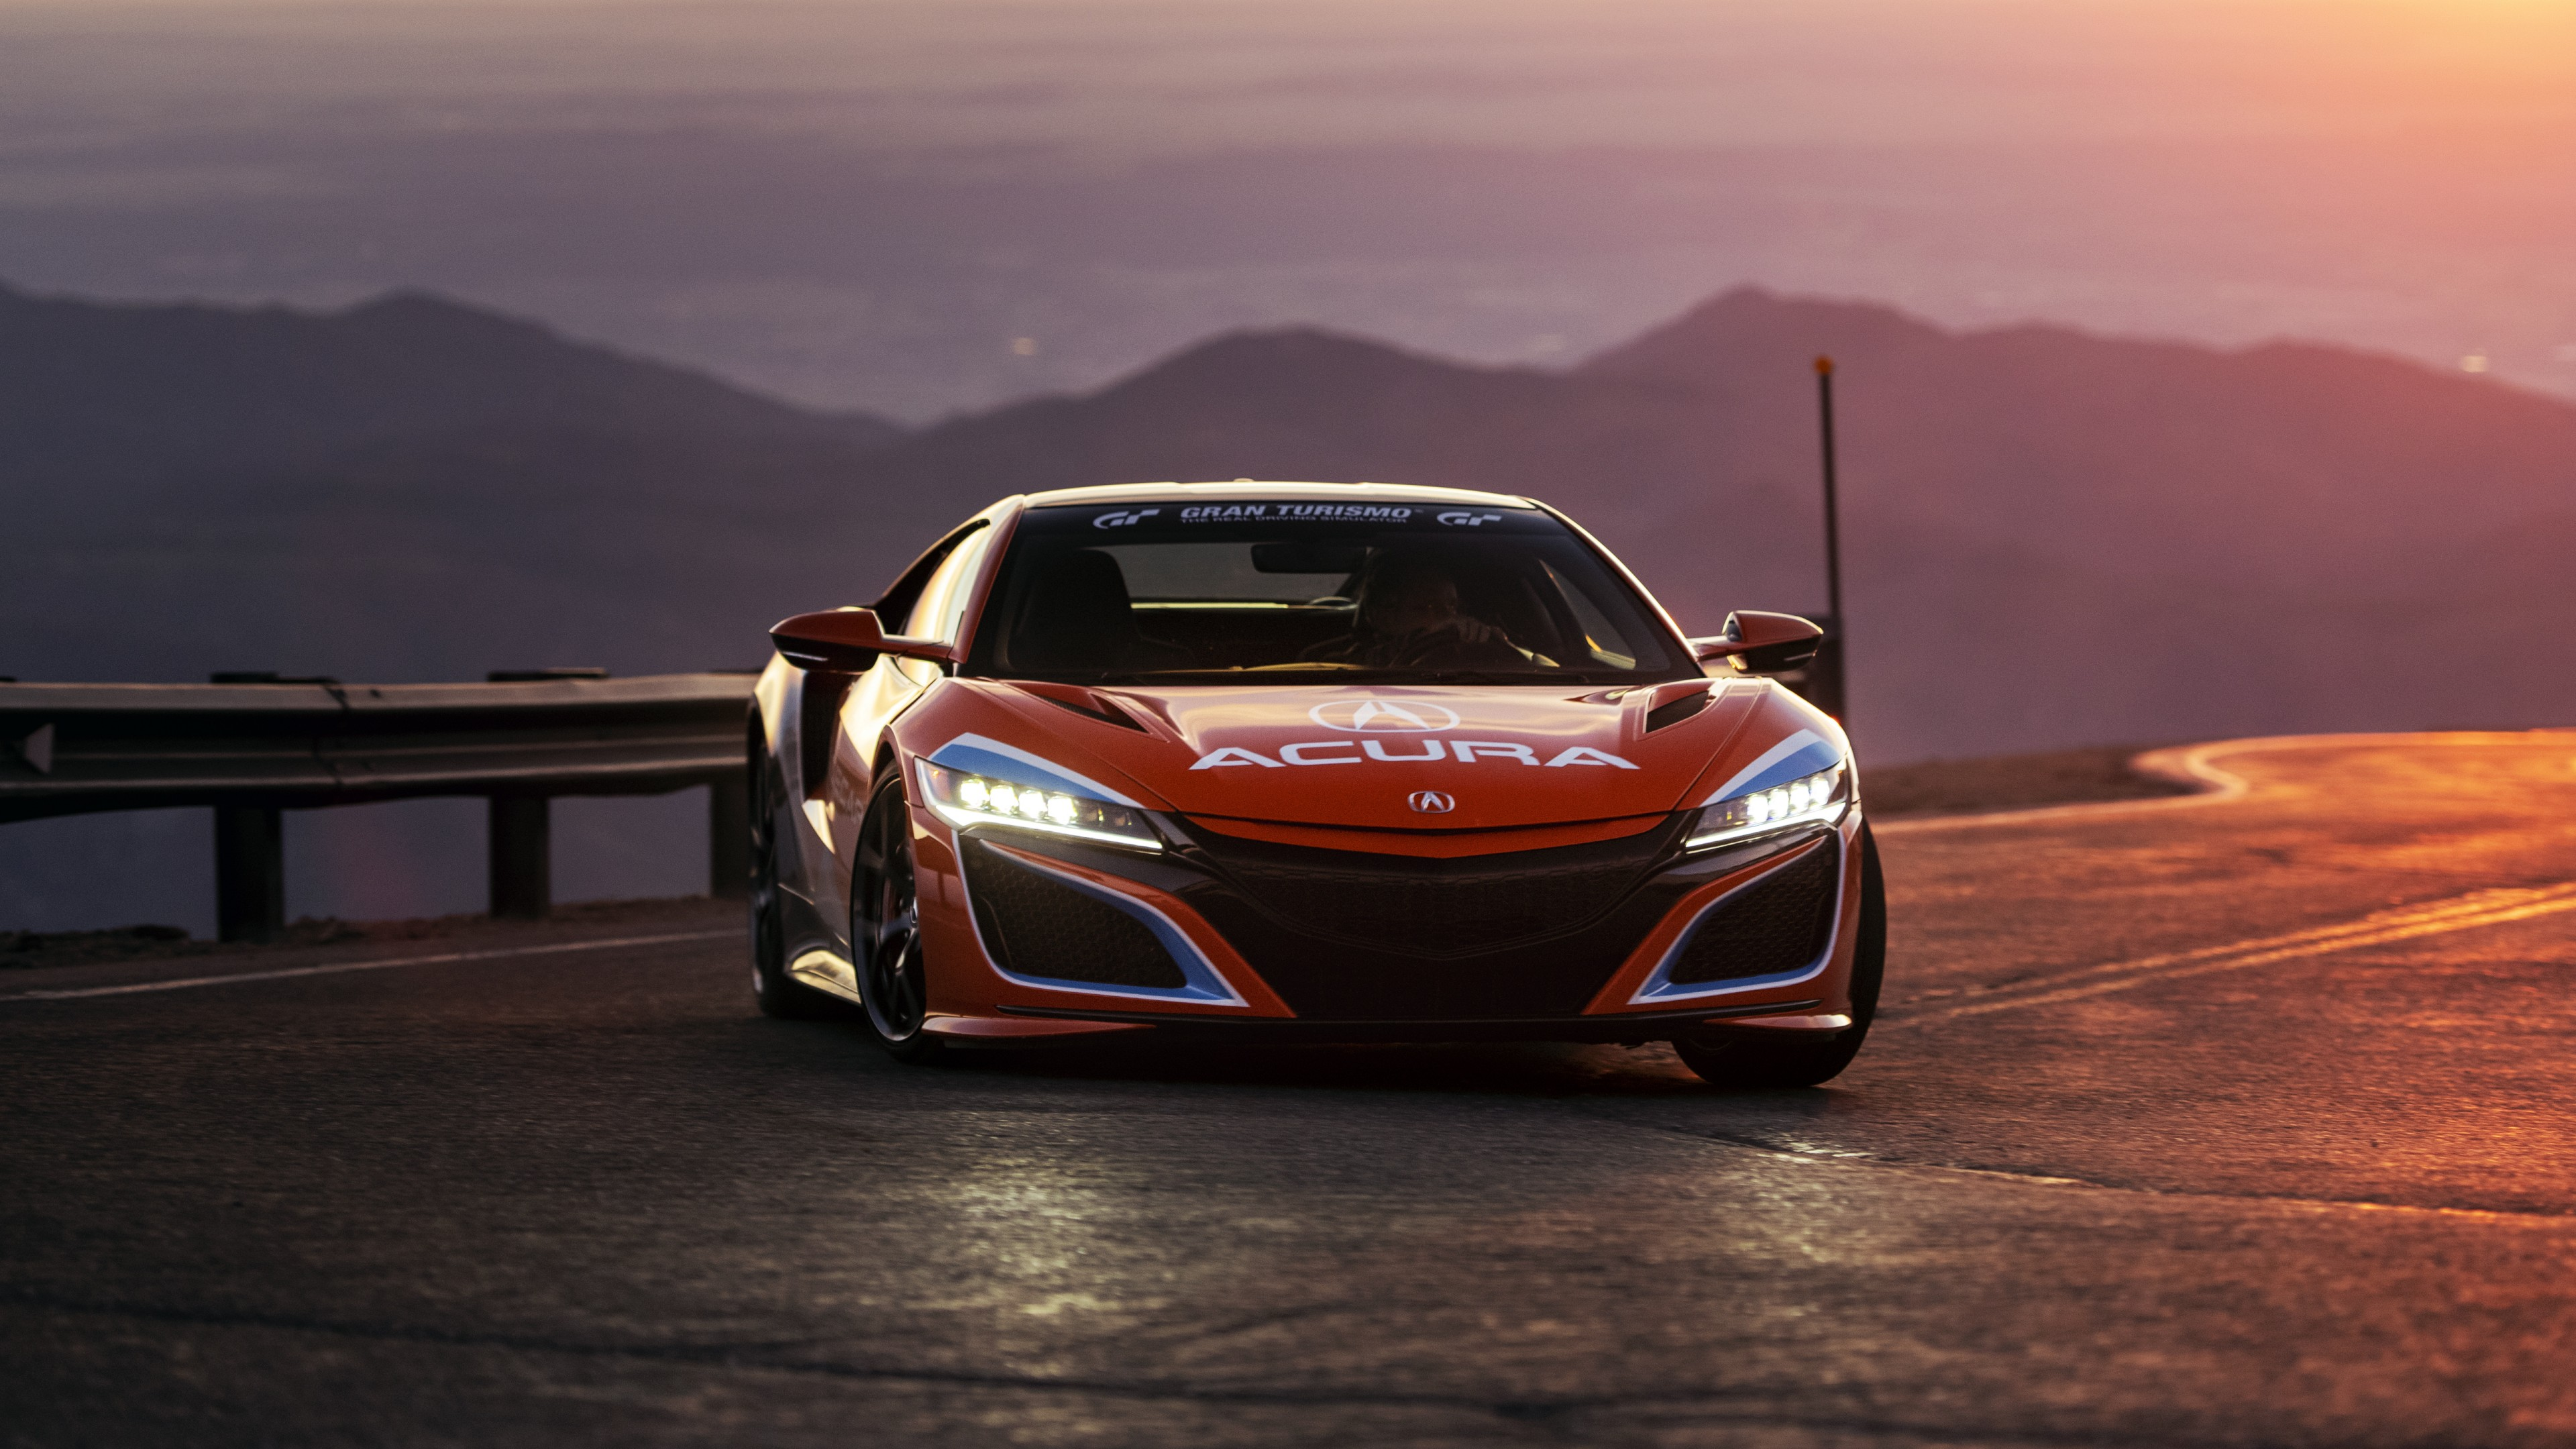 acura nsx pikes peak pace car 2019 4k wallpaper